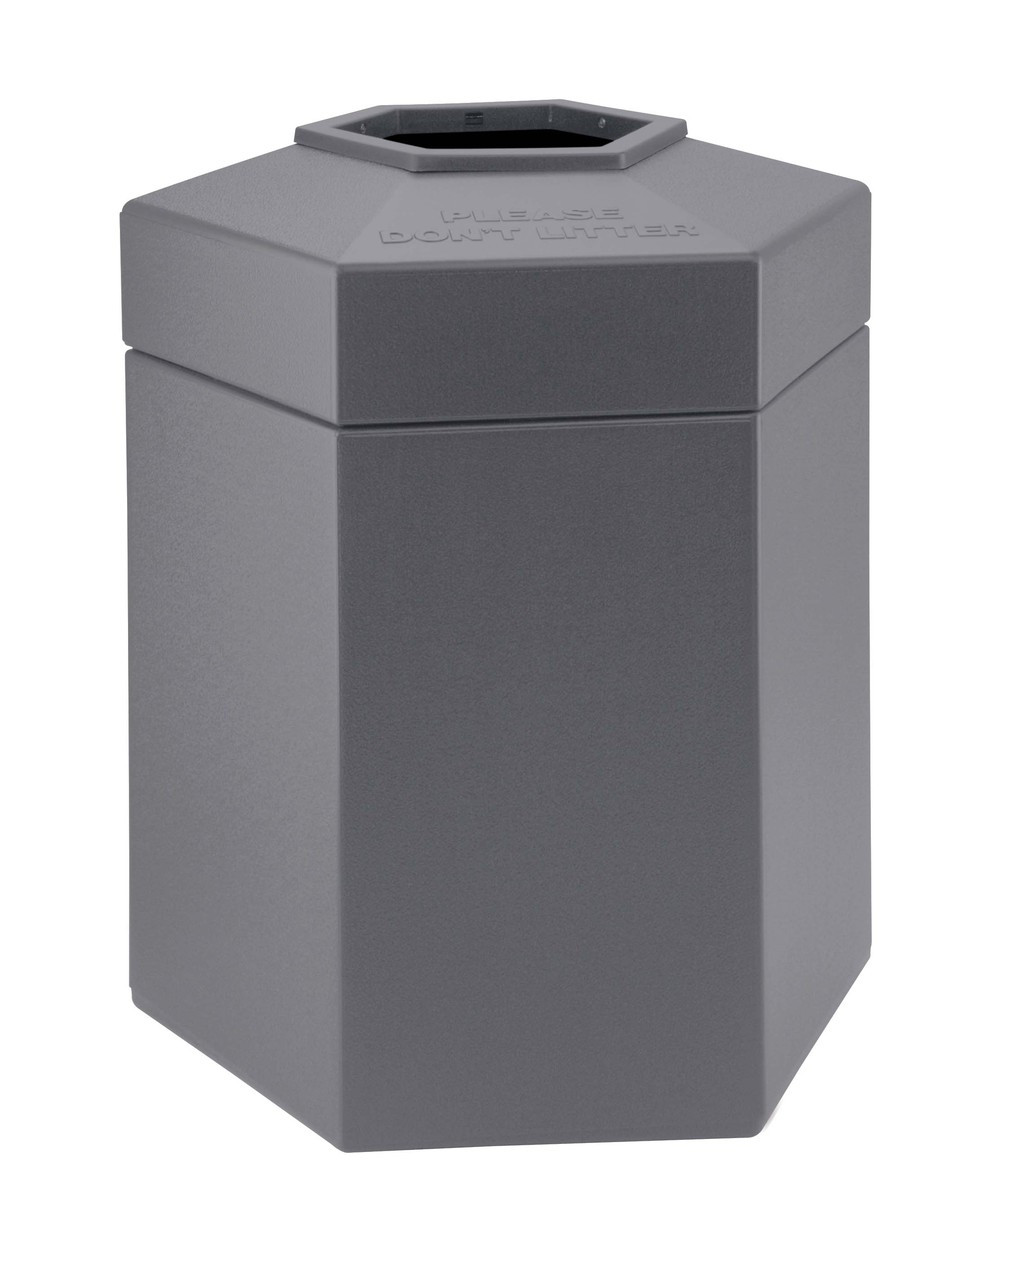 45 Gallon All Season Indoor Outdoor Hexagon Plastic Garbage Can Gray